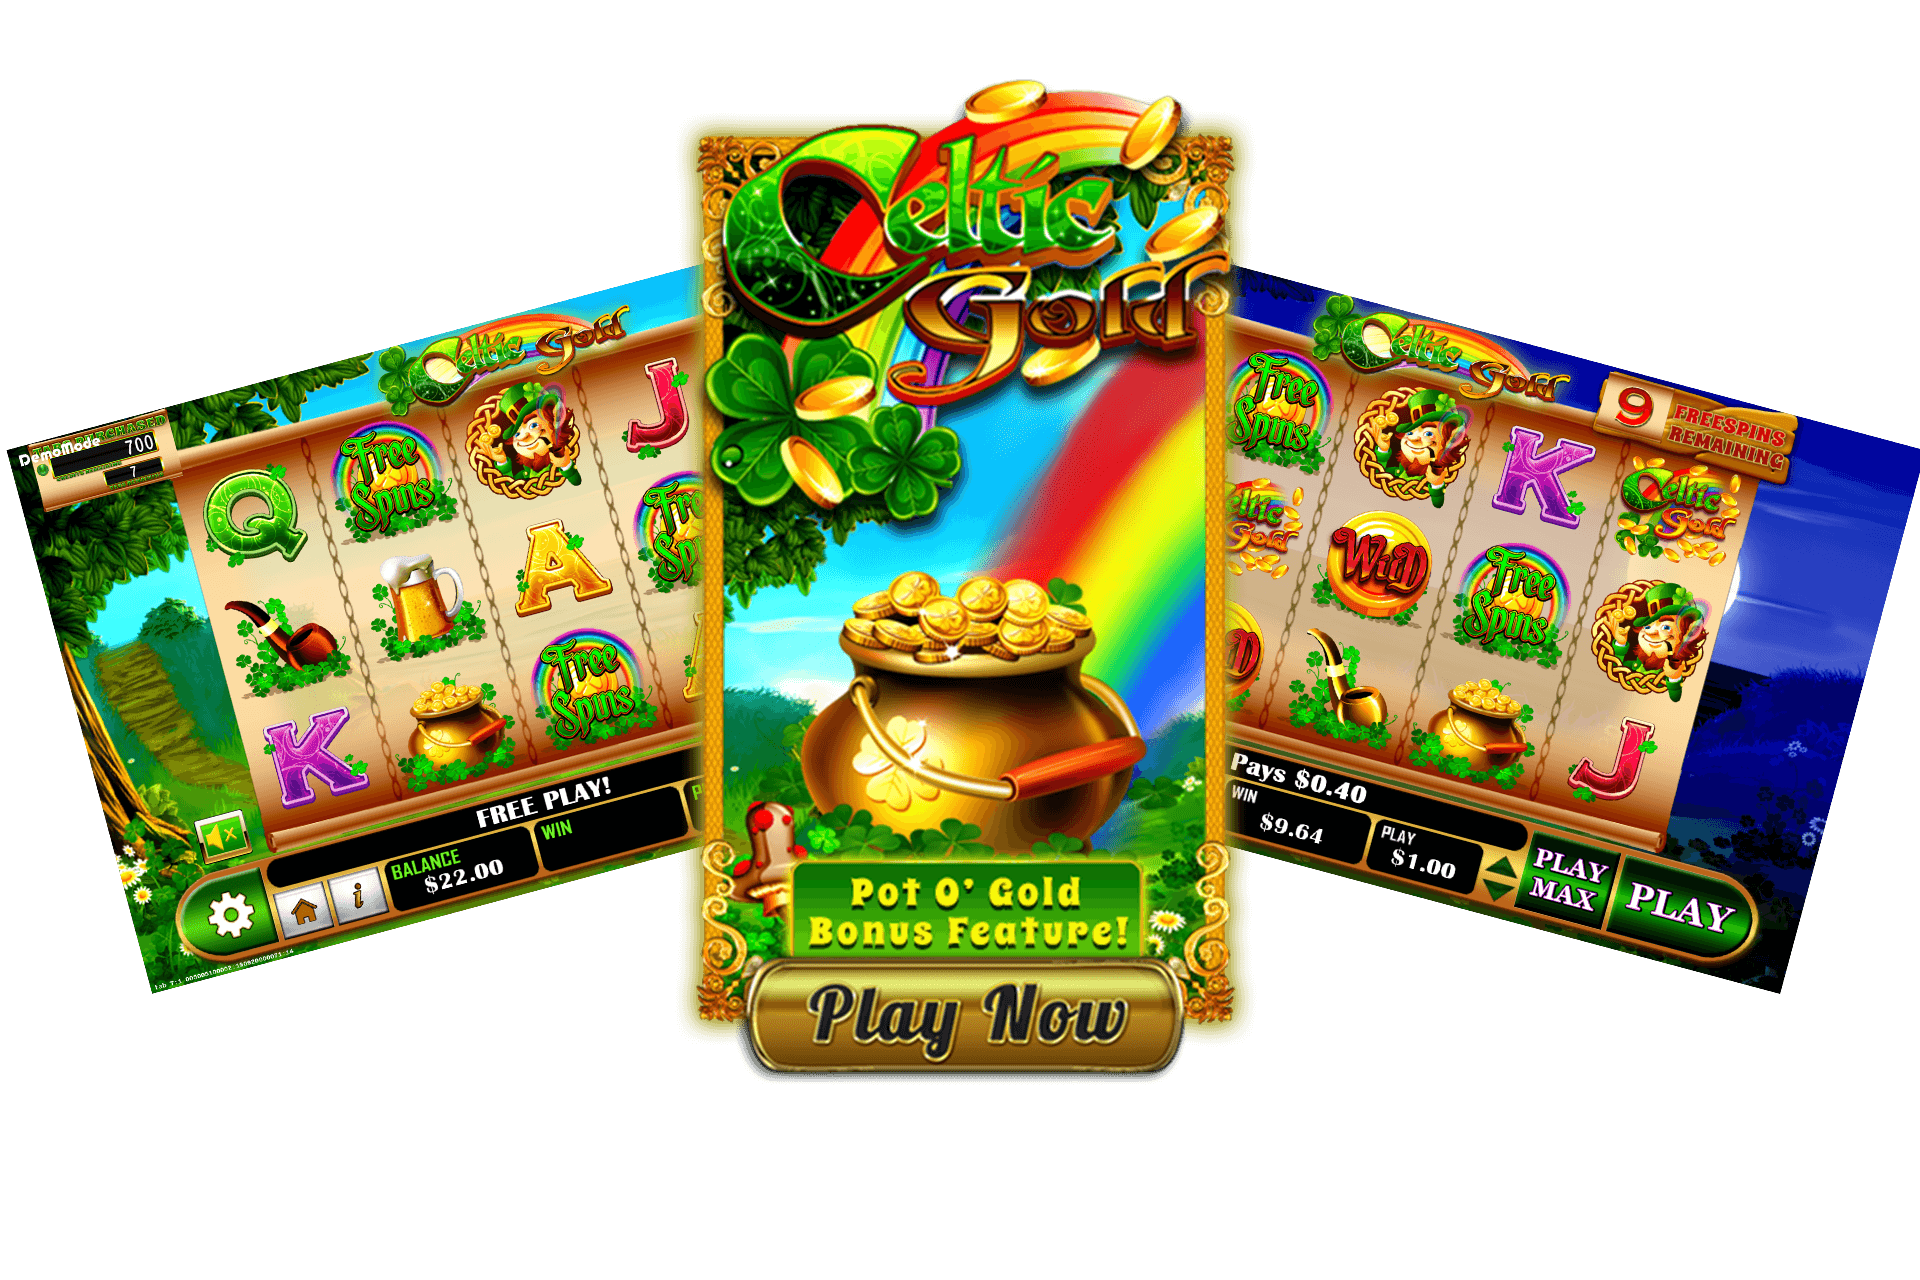 Celtic Gold Pull Tab Game